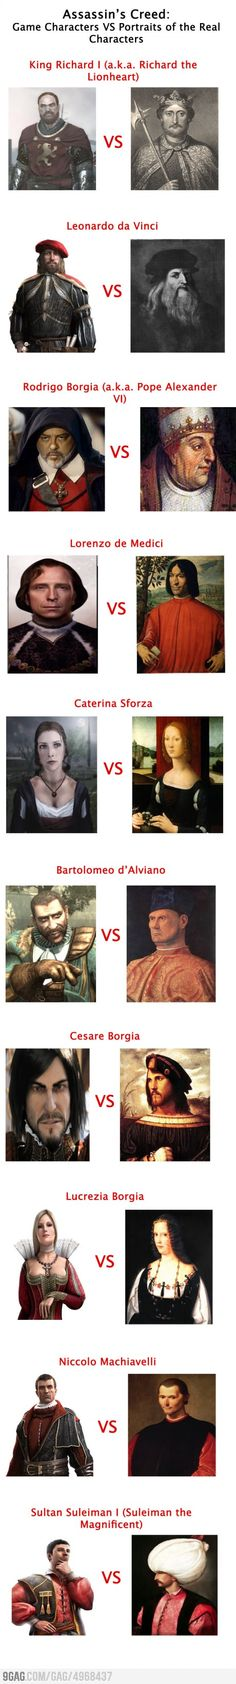 Assassin's Creed: game characters compared to their historical counterparts.